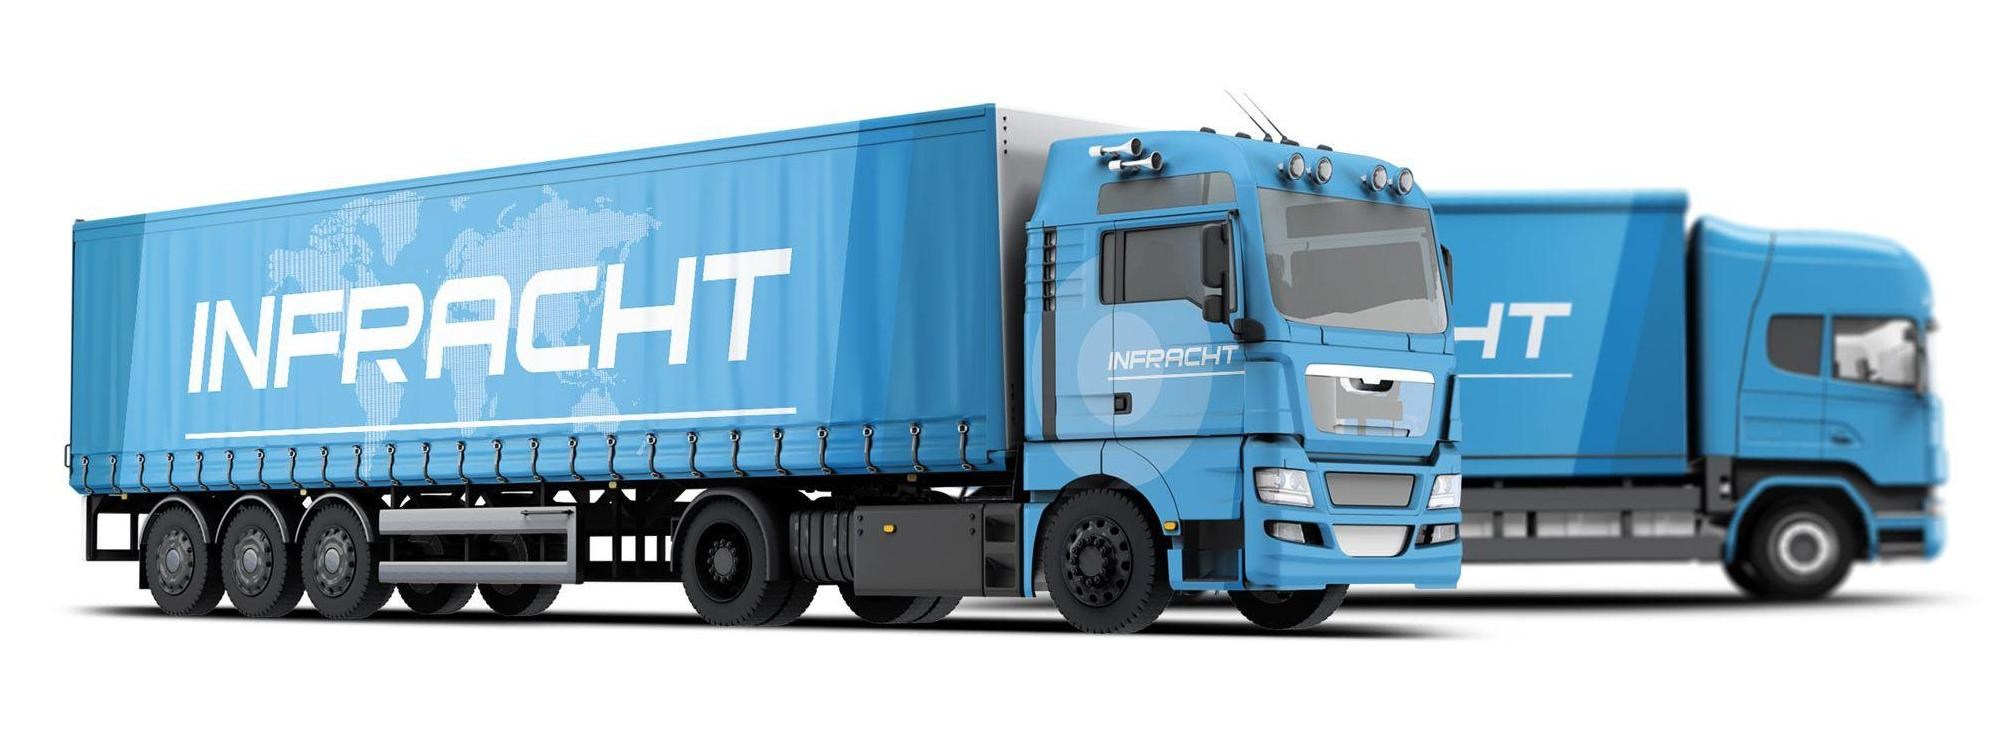 Infracht is more than a freight exchange